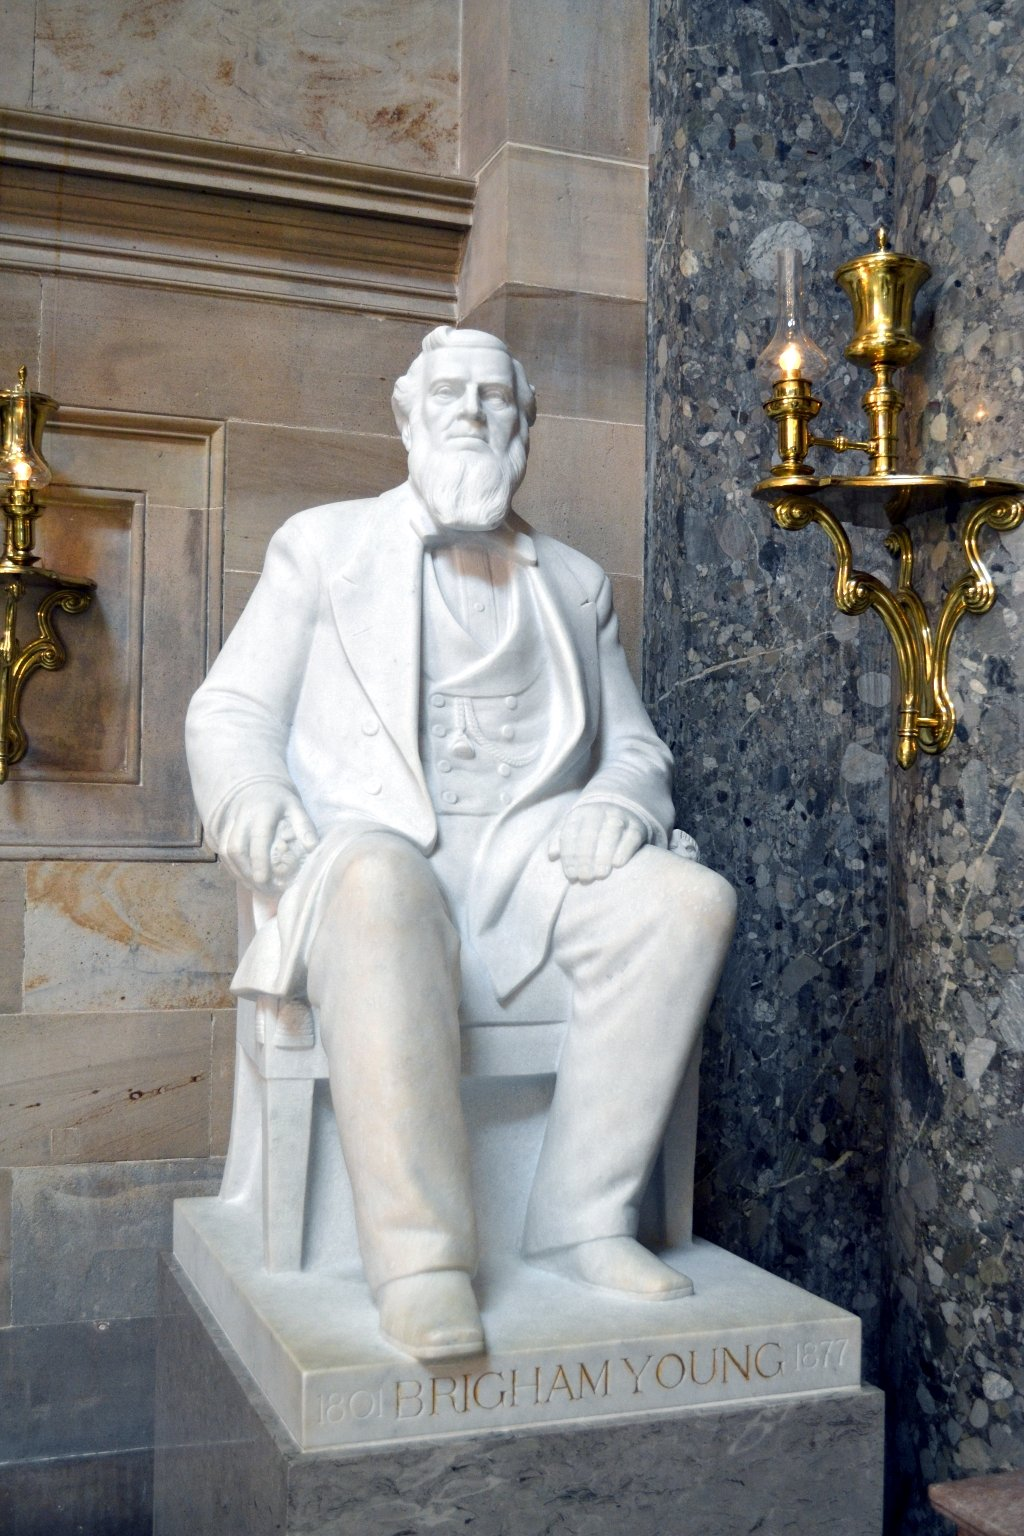 Brigham Young Statue at the U.S. Capitol Building